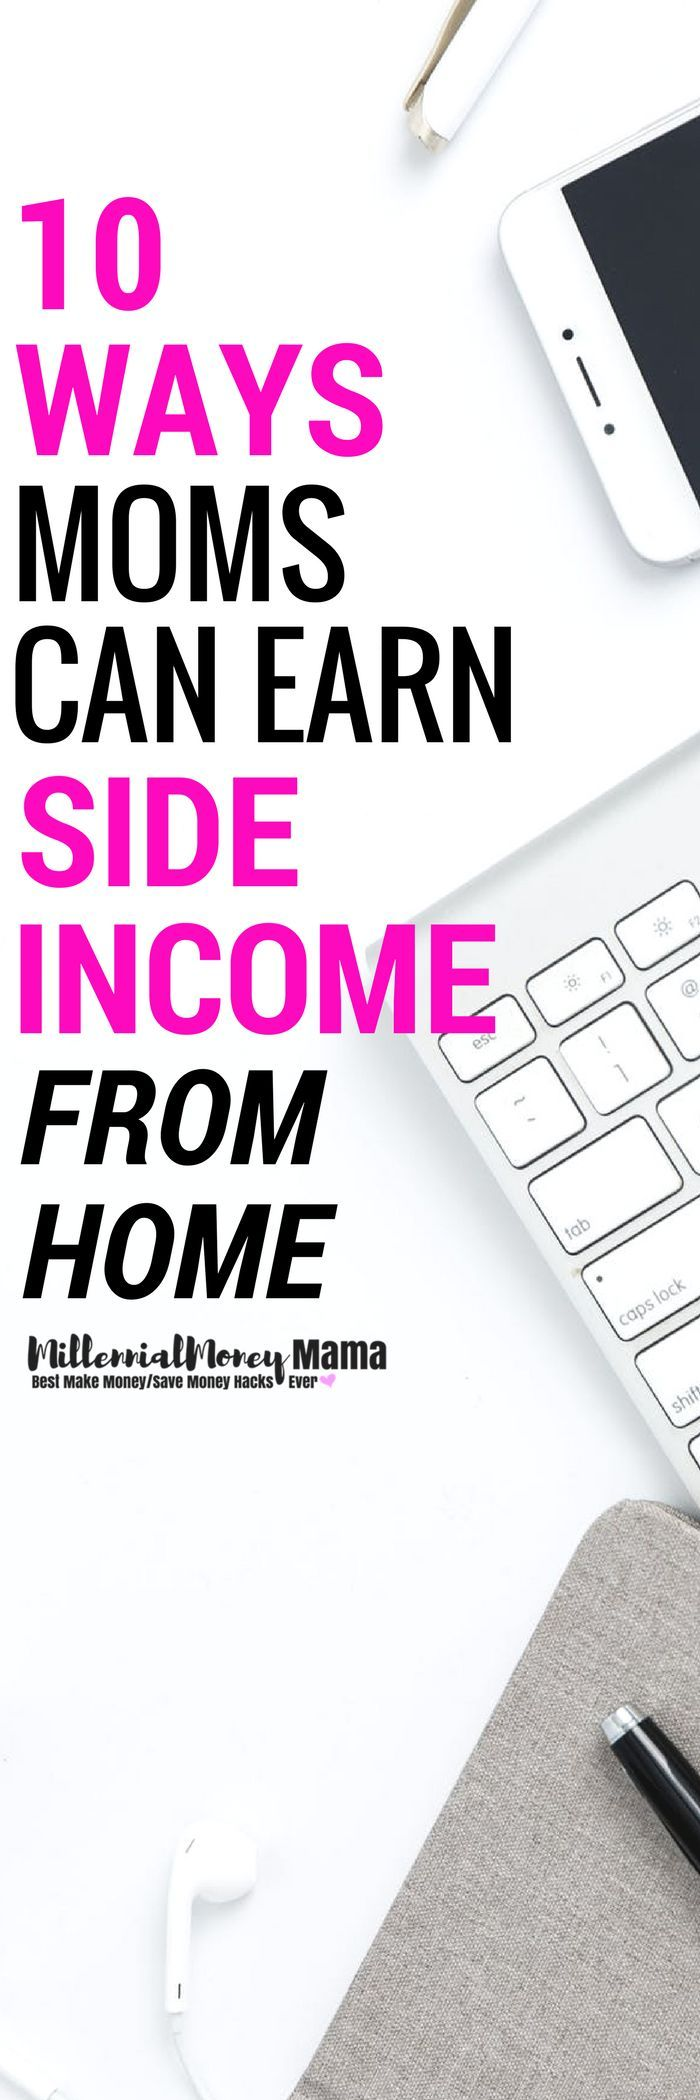 Hey mama, interested in working from home? Check out these AMAZING ...